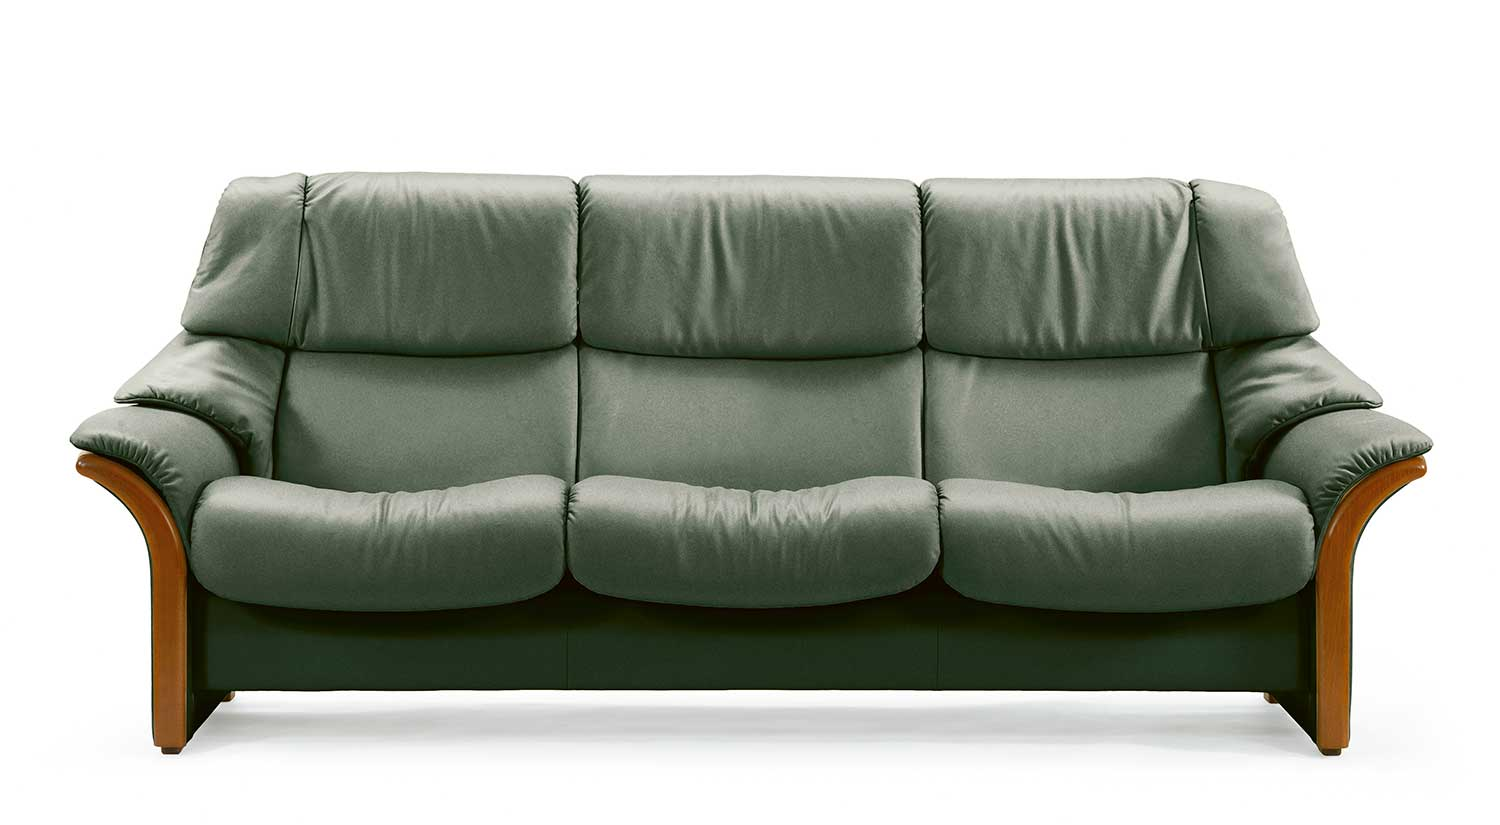 Stressless Outlet Circle Furniture Eldorado Stressless Highback Sofa